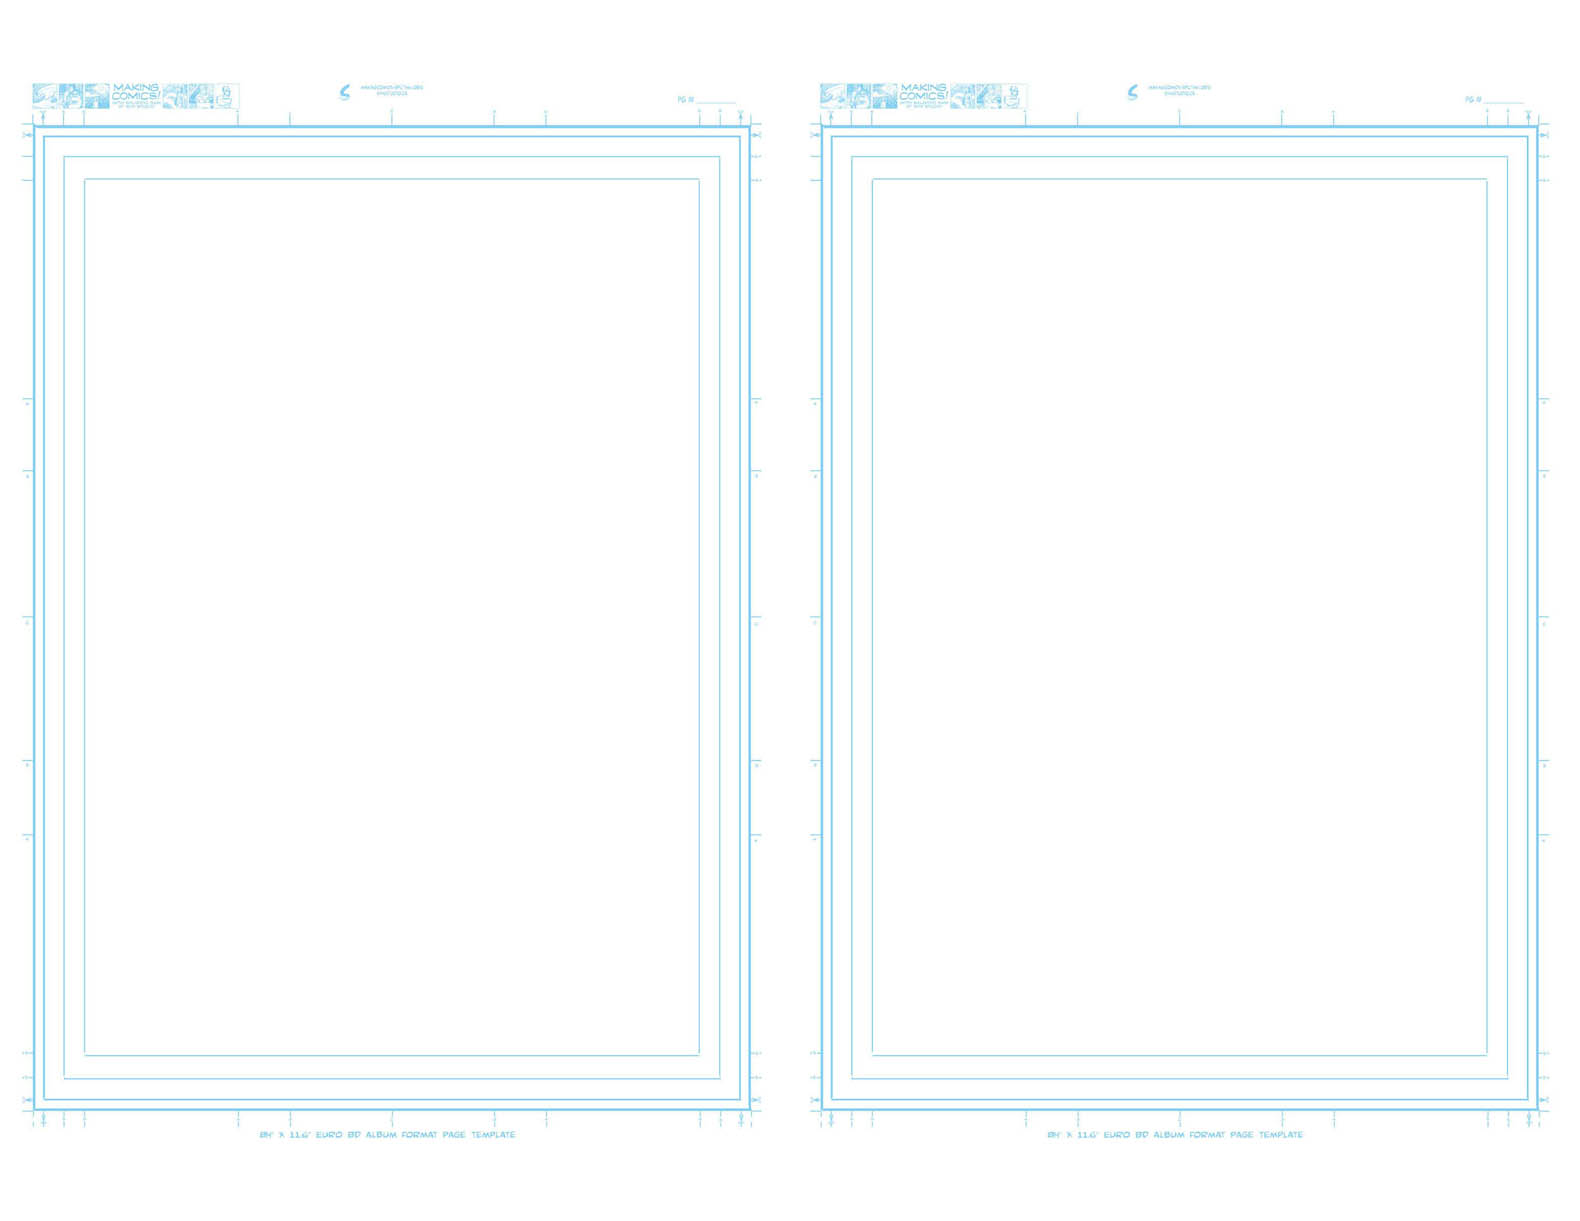 Page aspect ratios templates making comics thumbnail sheet print these to do your rough layouts on you can do roughs larger but this lets you see the over all page design and stay away from too pronofoot35fo Gallery